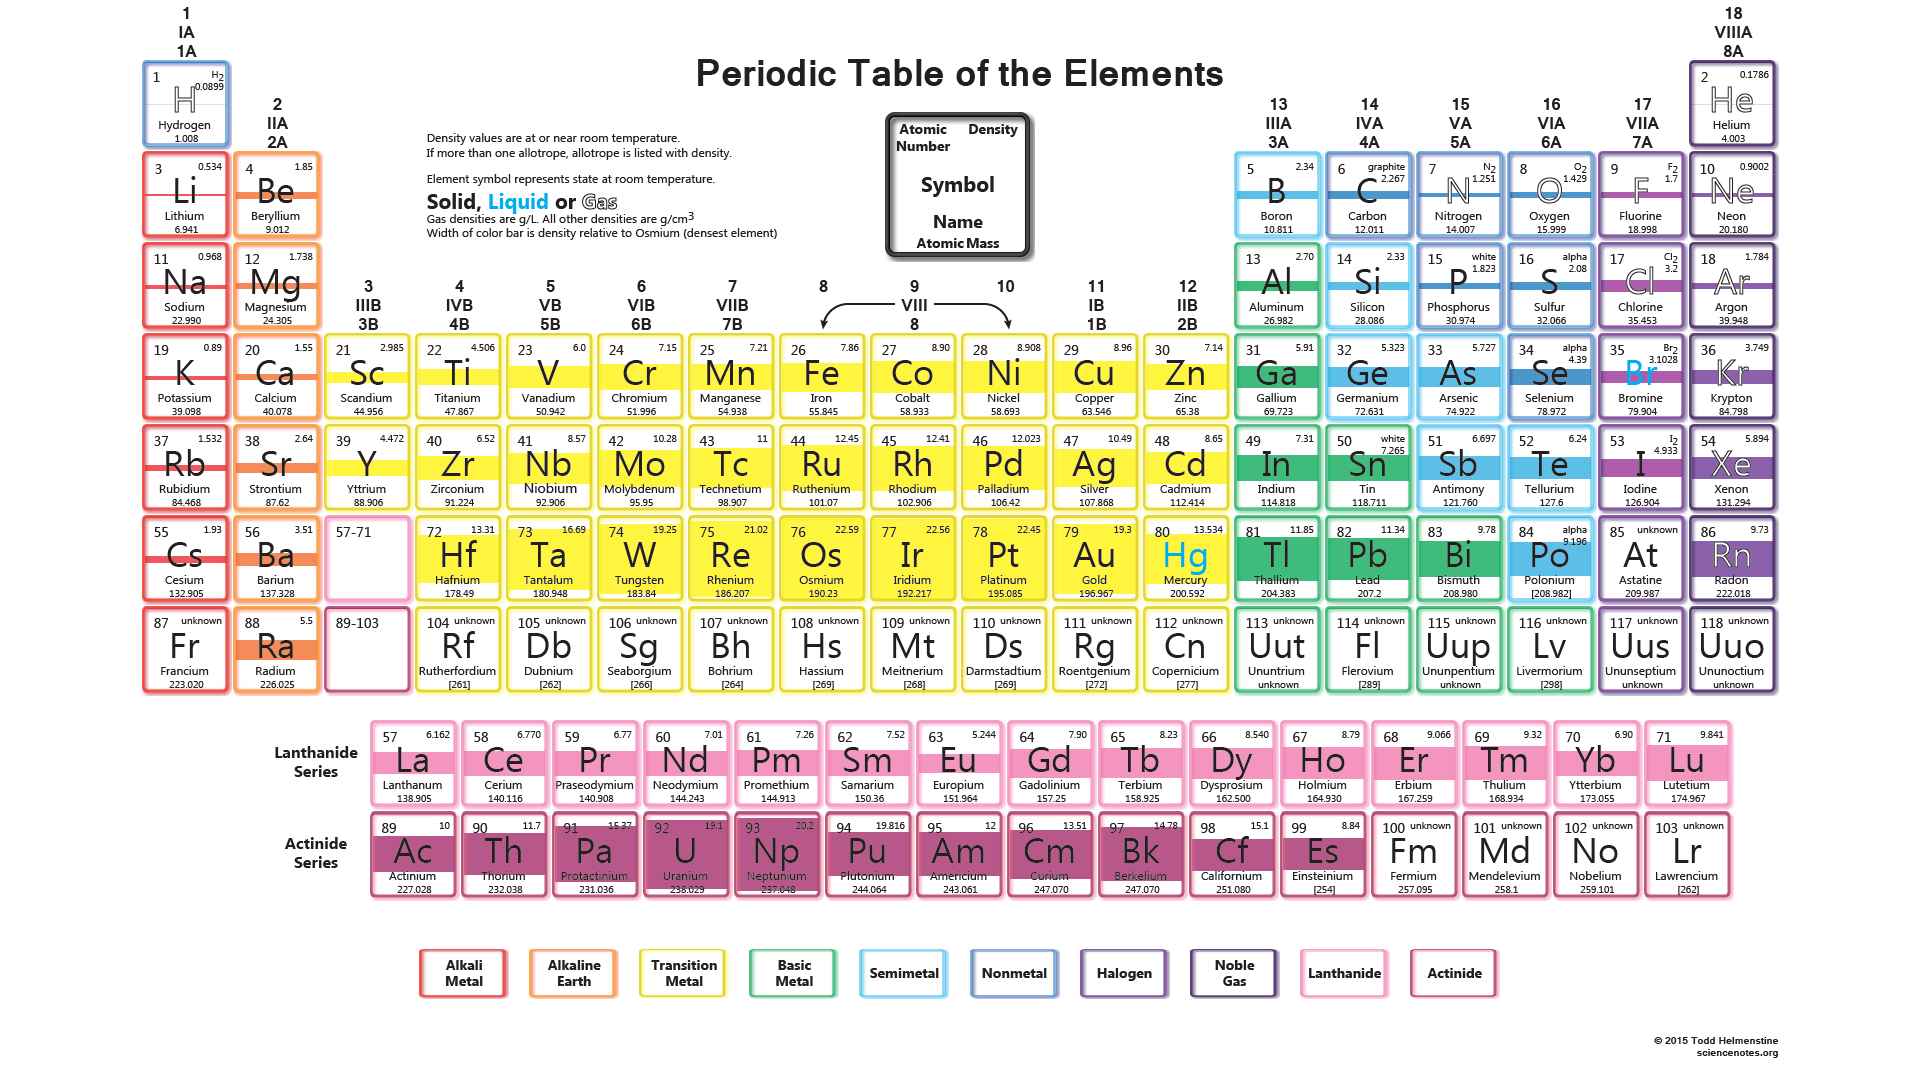 Density of all 118 chemical elements on the periodic table density of all 118 chemical elements on the periodic table urtaz